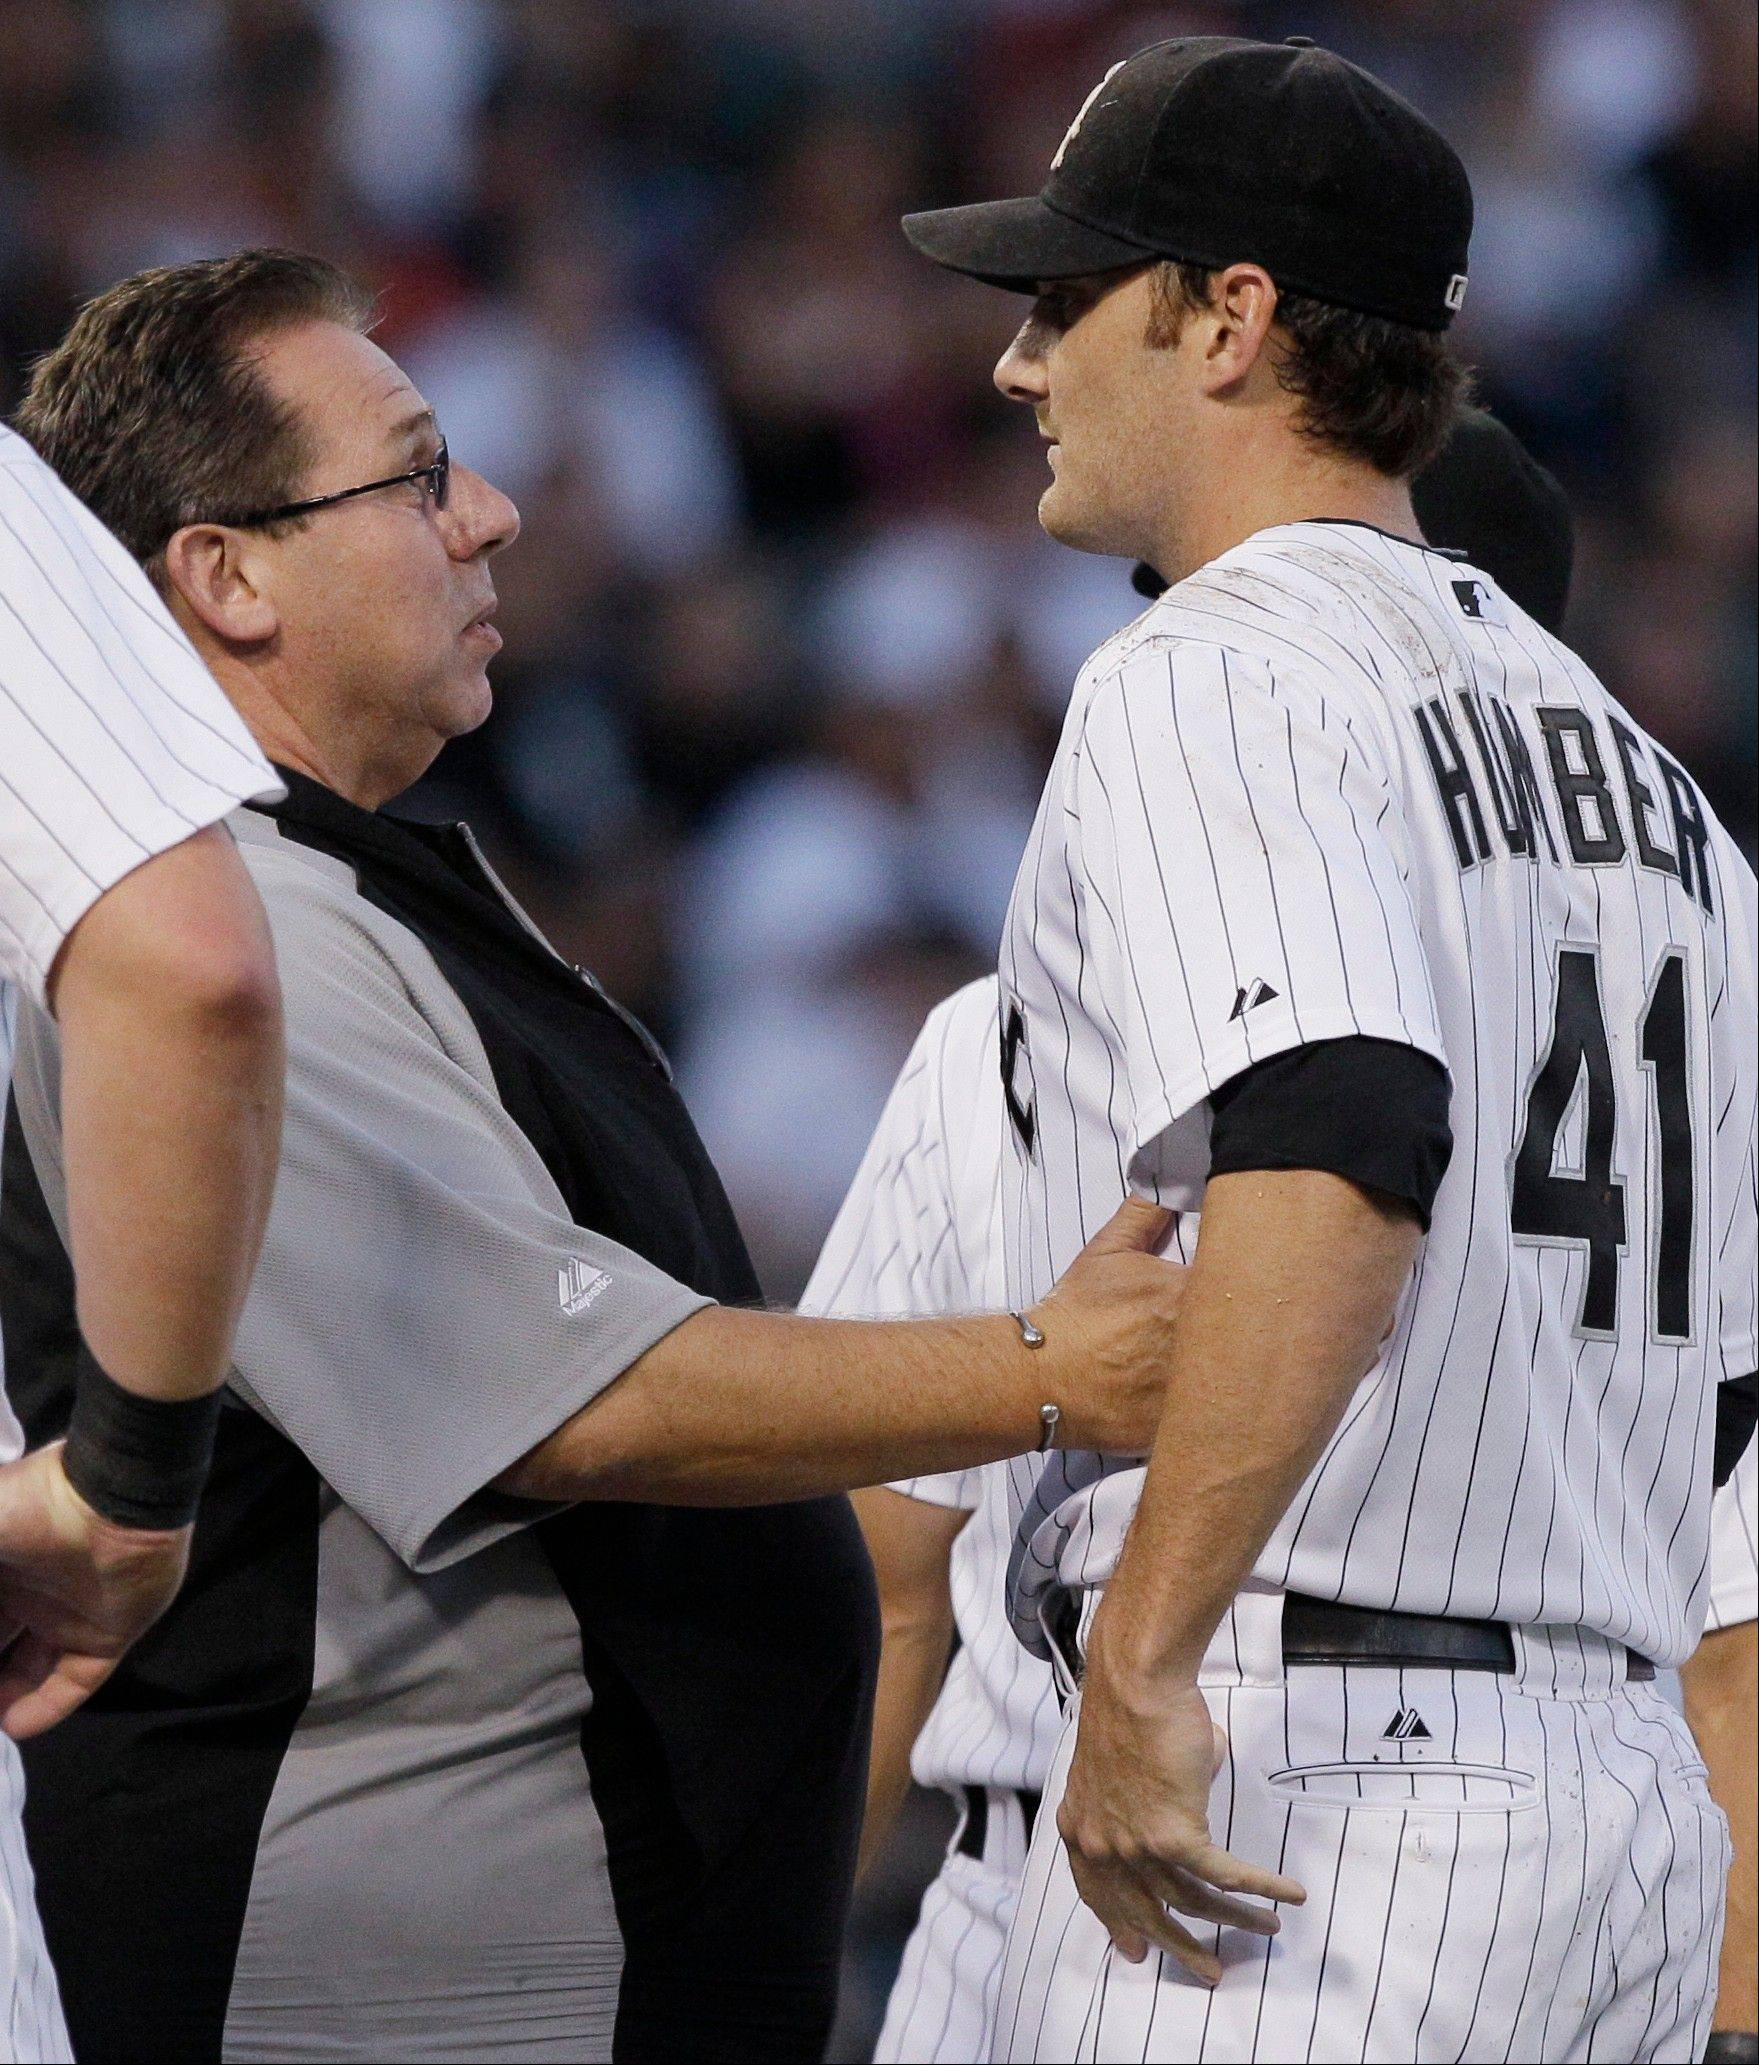 Associated PressPhil Humber is examined by a White Sox trainer Herm Schneider after being hit in the head by a liner from the Indians' Kosuke Fukudome.